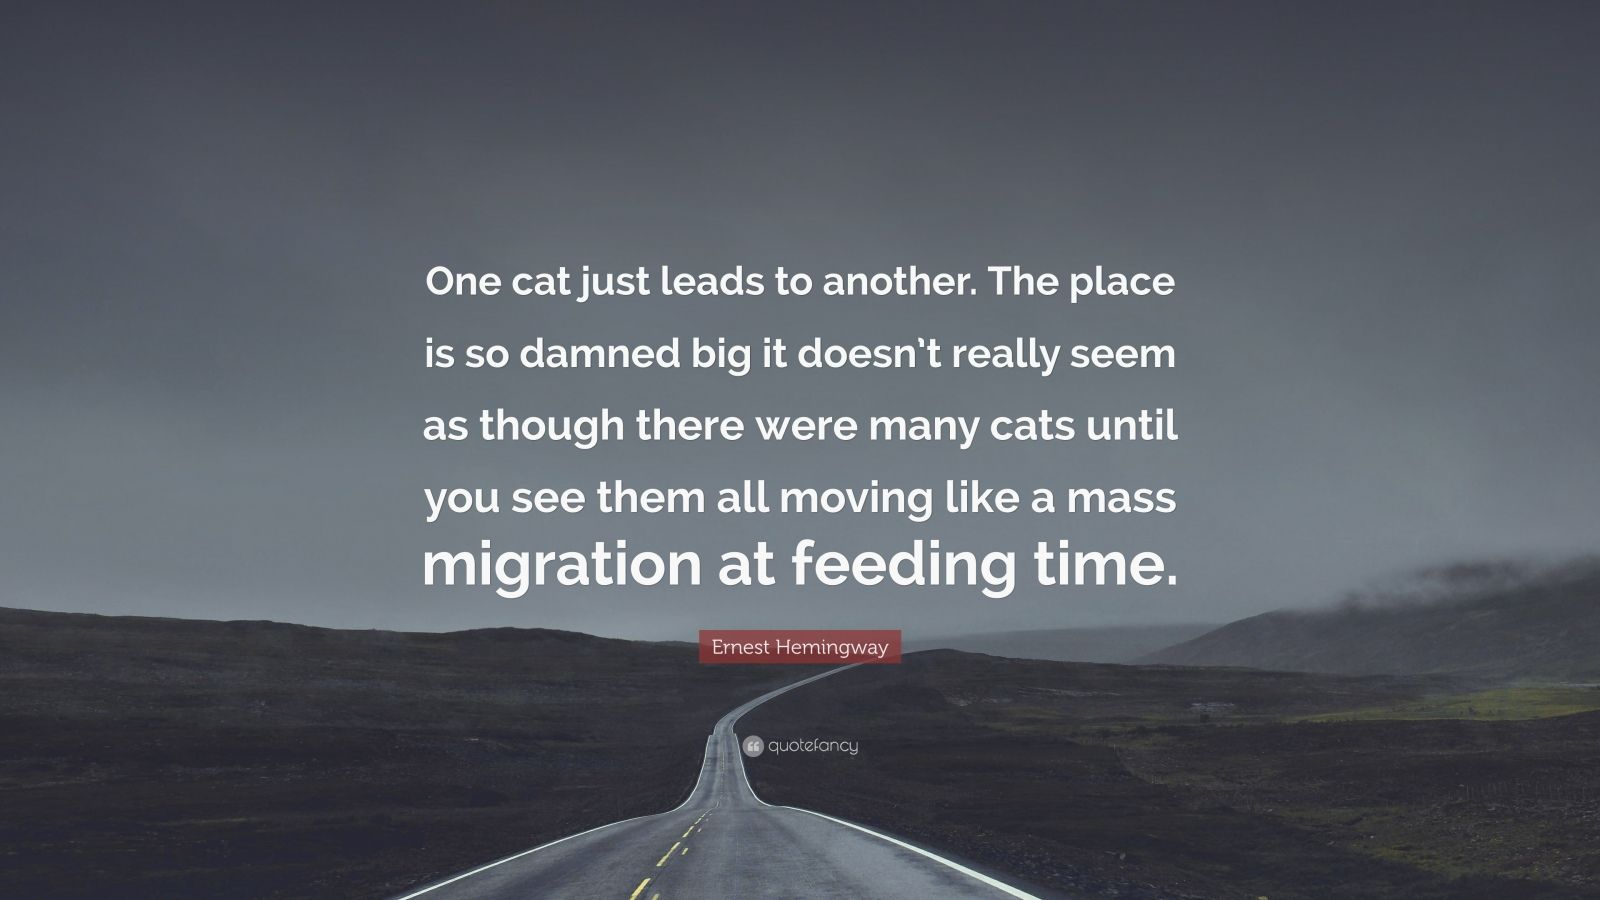 """Ernest Hemingway Quote: """"One cat just leads to another. The place is so damned big it doesn't really seem as though there were many cats until you see them all moving like a mass migration at feeding time."""""""